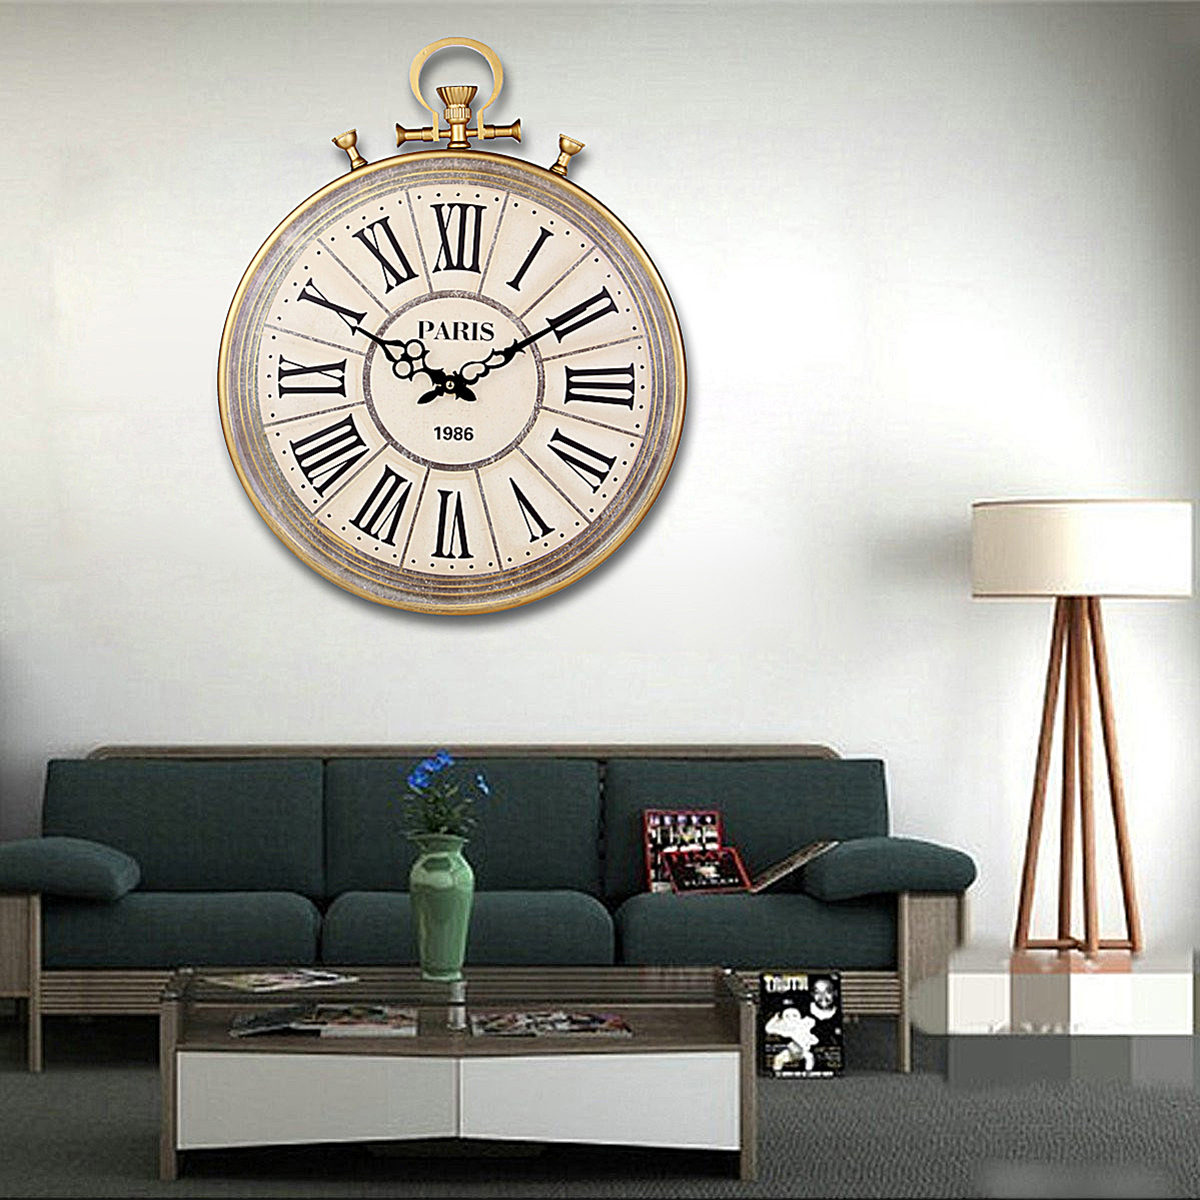 Where To Hang Wall Clock In Living Room Large Round Vintage Pocket Watch Style Roman Numerals Wall